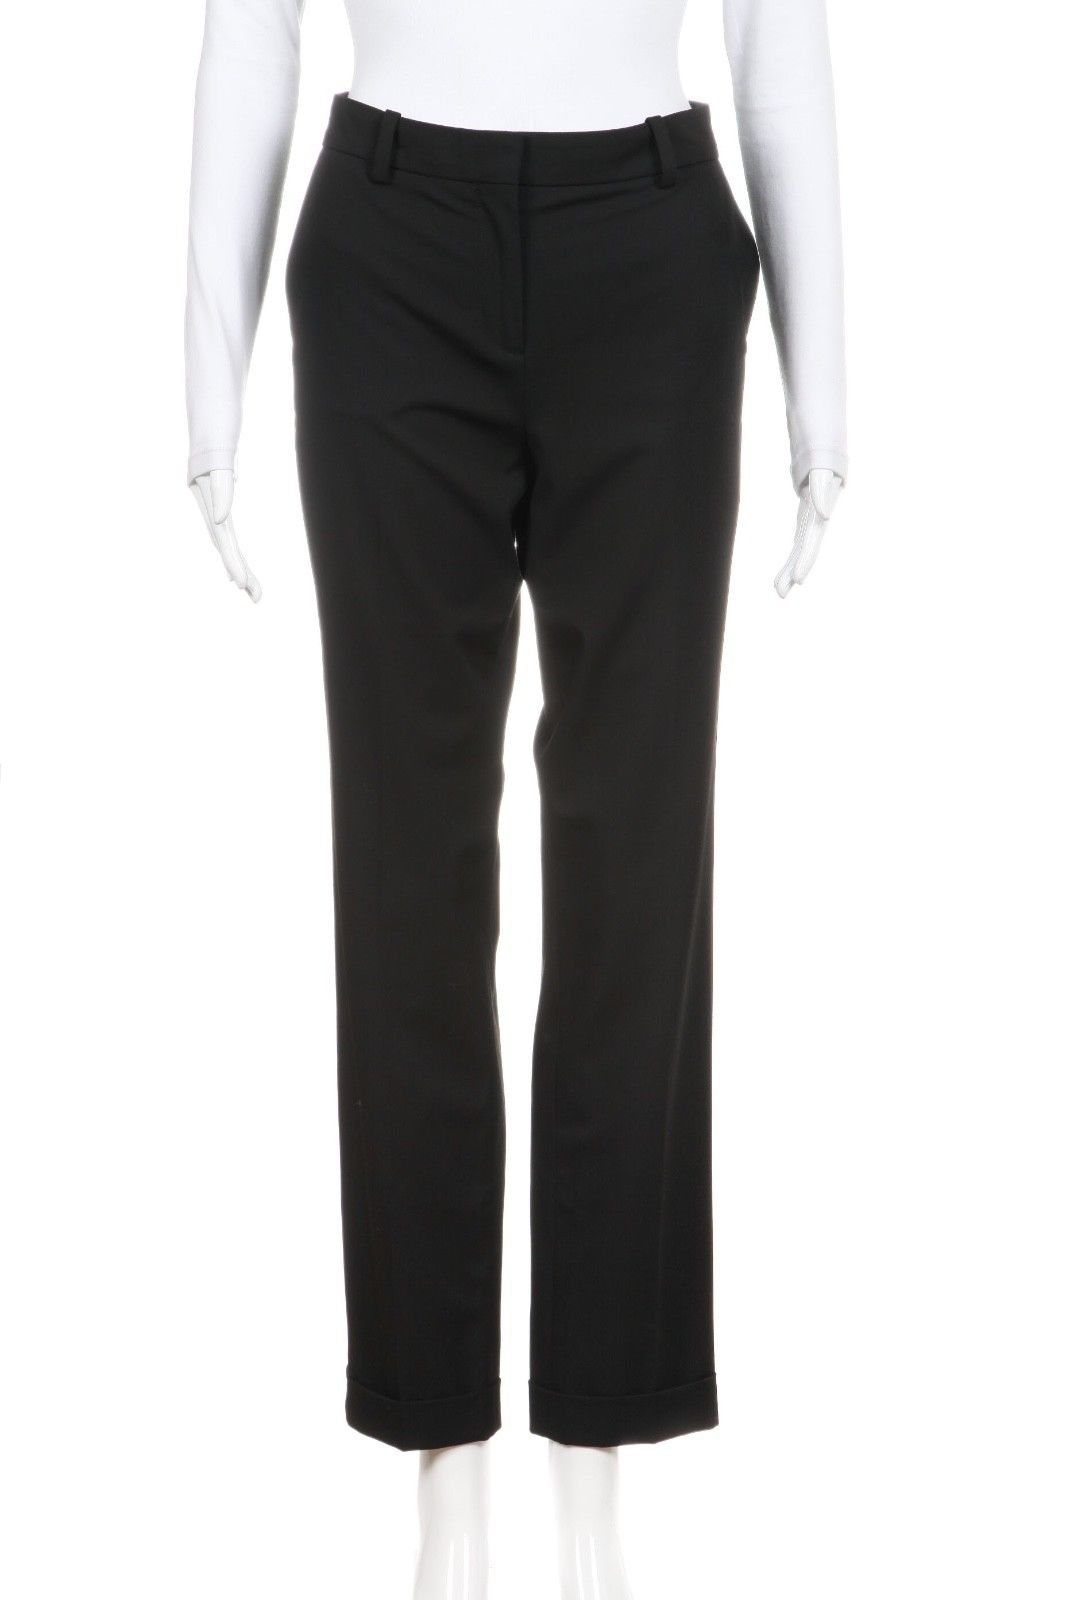 THE KOOPLES Ankle Pants Cuffed Size 36